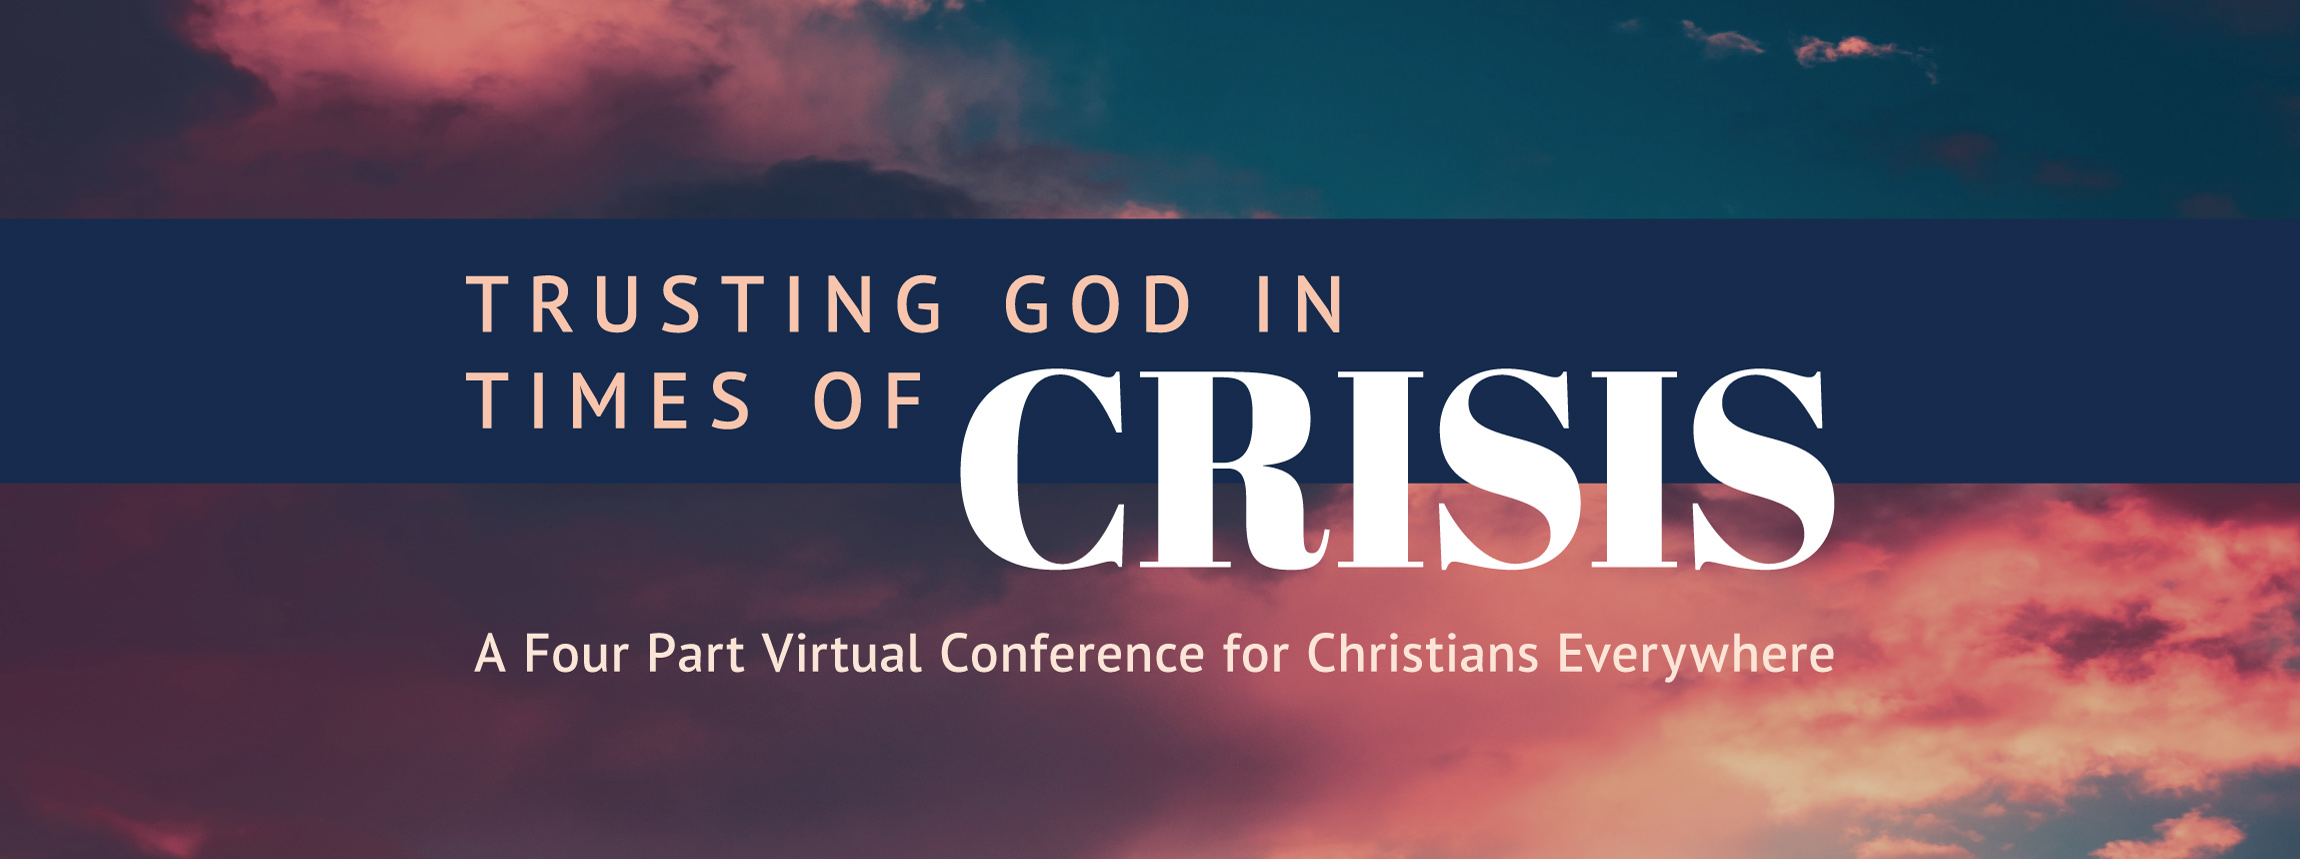 Trusting God in Times of Crisis - A Four Part Virtual Conference for Christians Everywhere